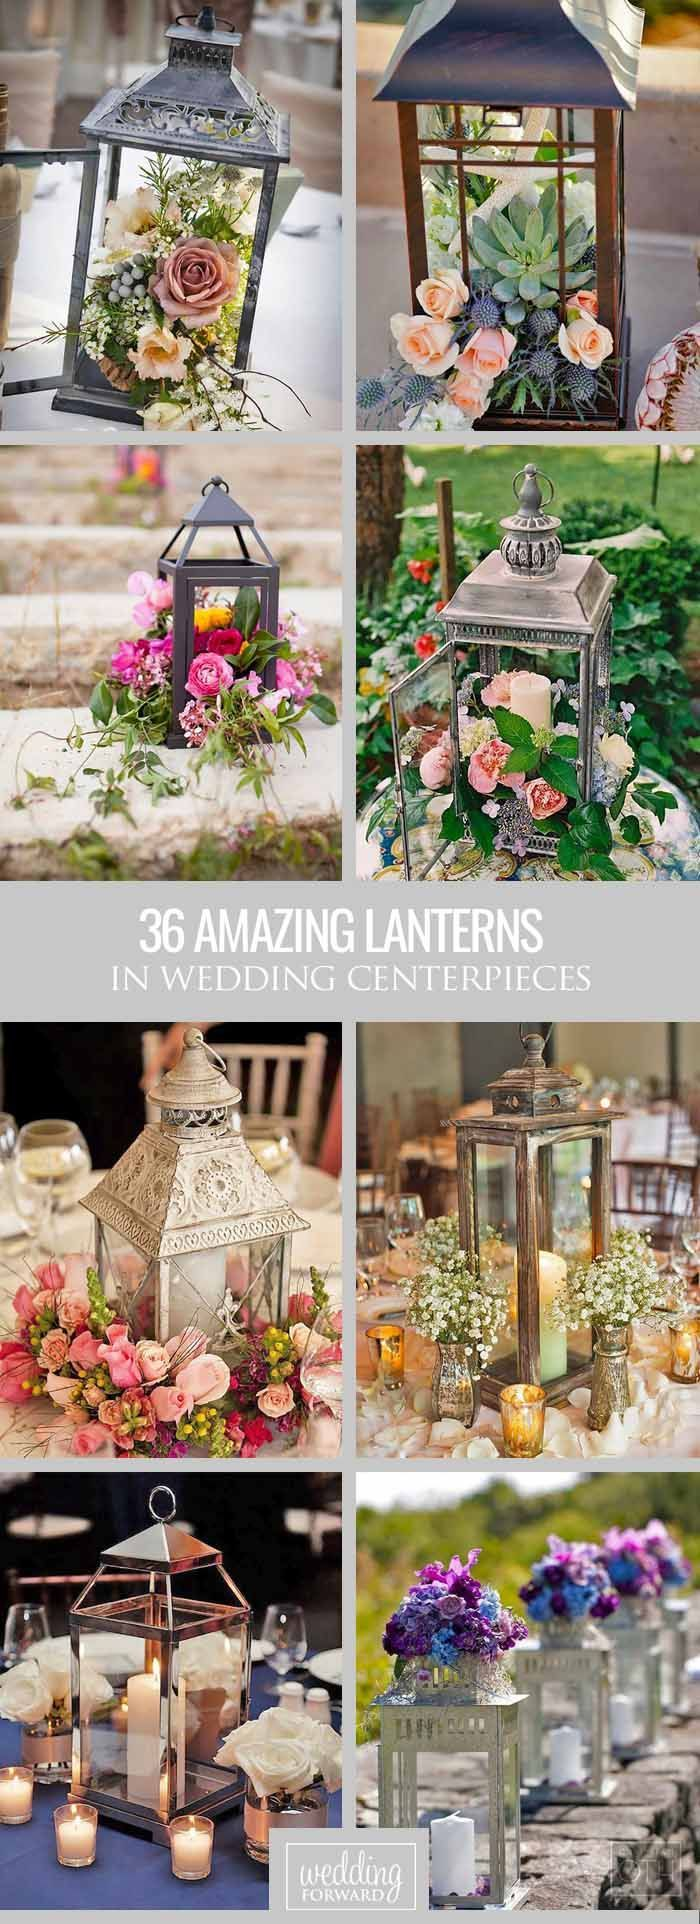 church wedding decorations candles%0A    Amazing Lantern Wedding Centerpiece Ideas